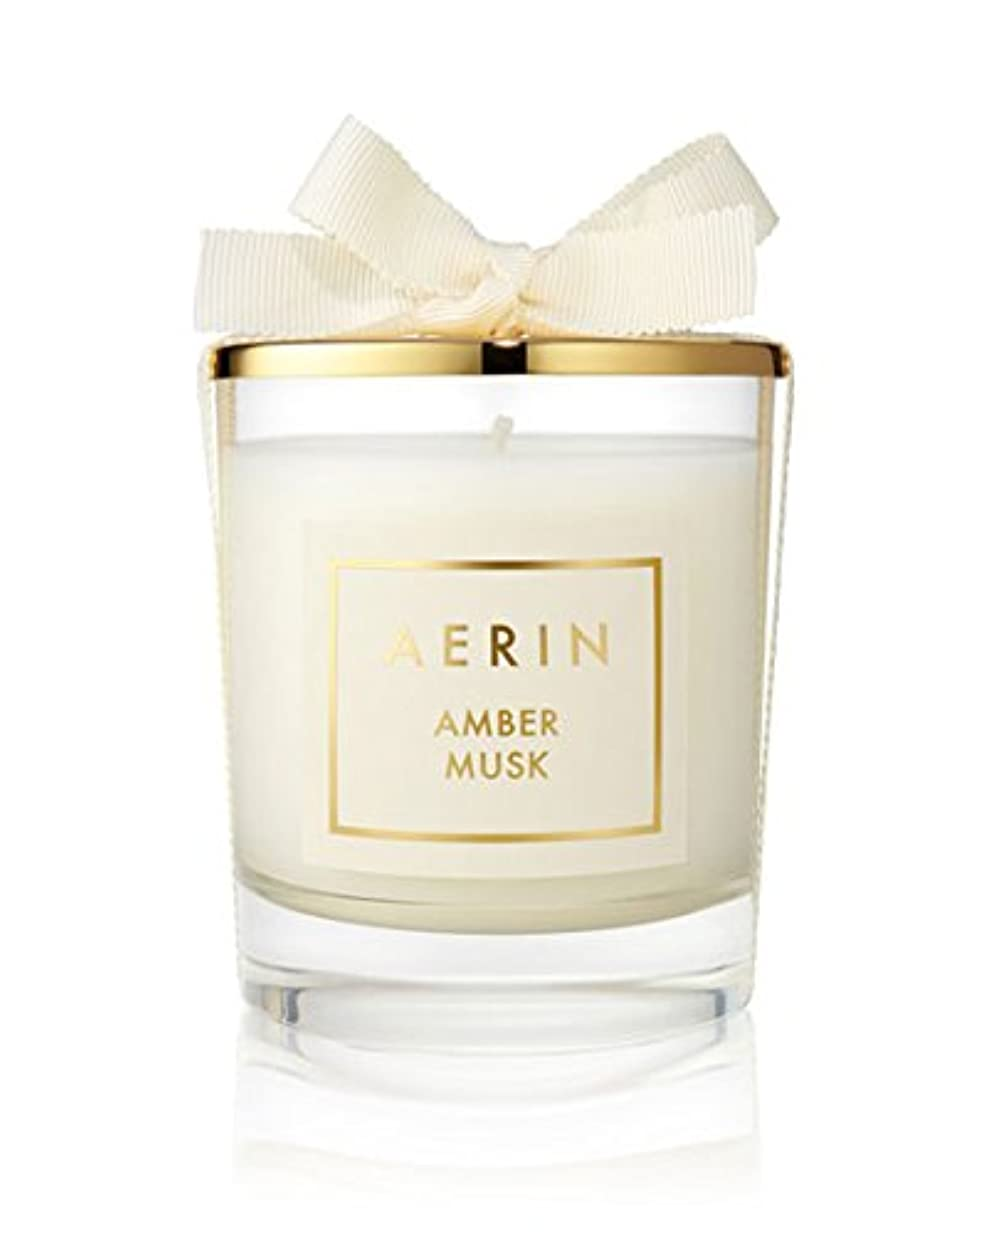 AERIN AmberムスクCandle 7オンス/ 200 g Limited Edition